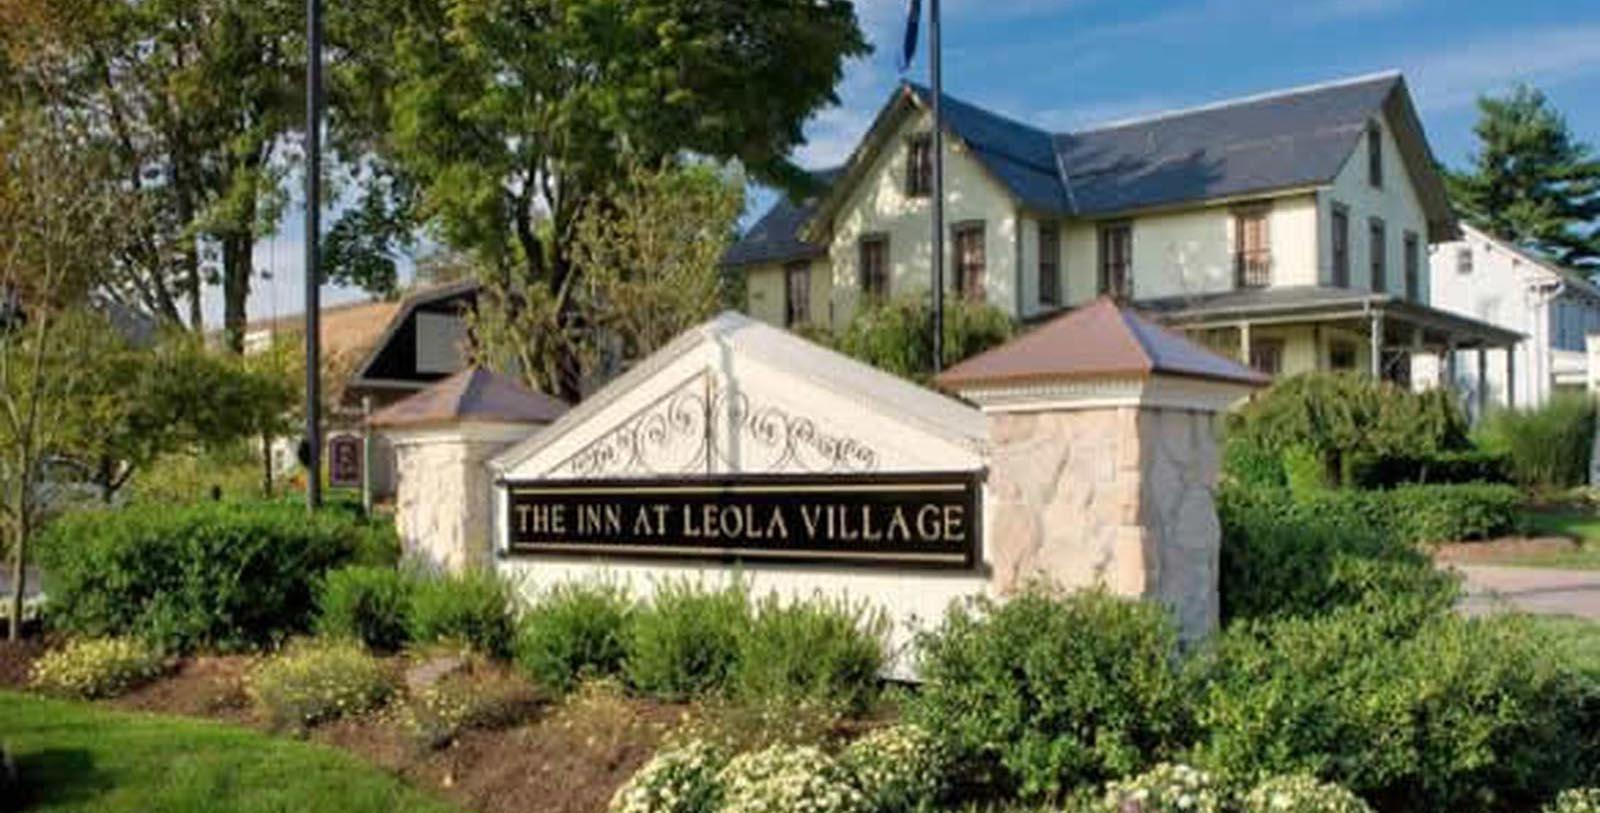 The Inn at Leola Village, Est. 1867